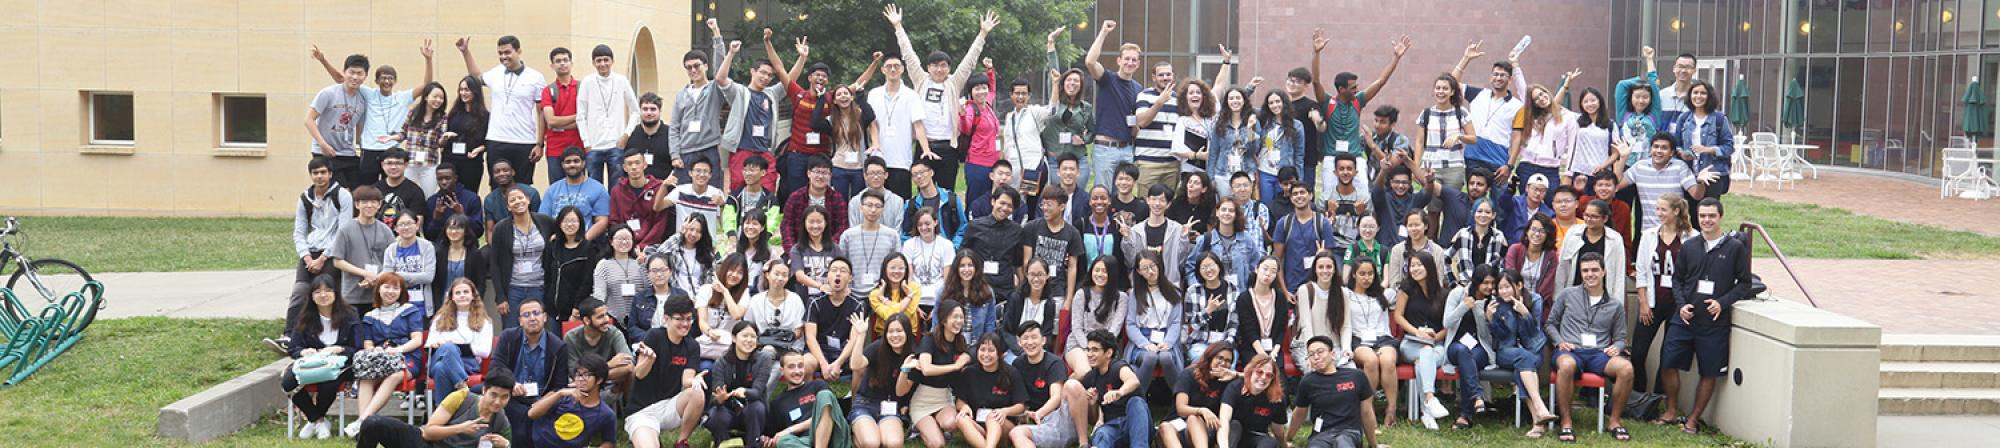 group photo of international students